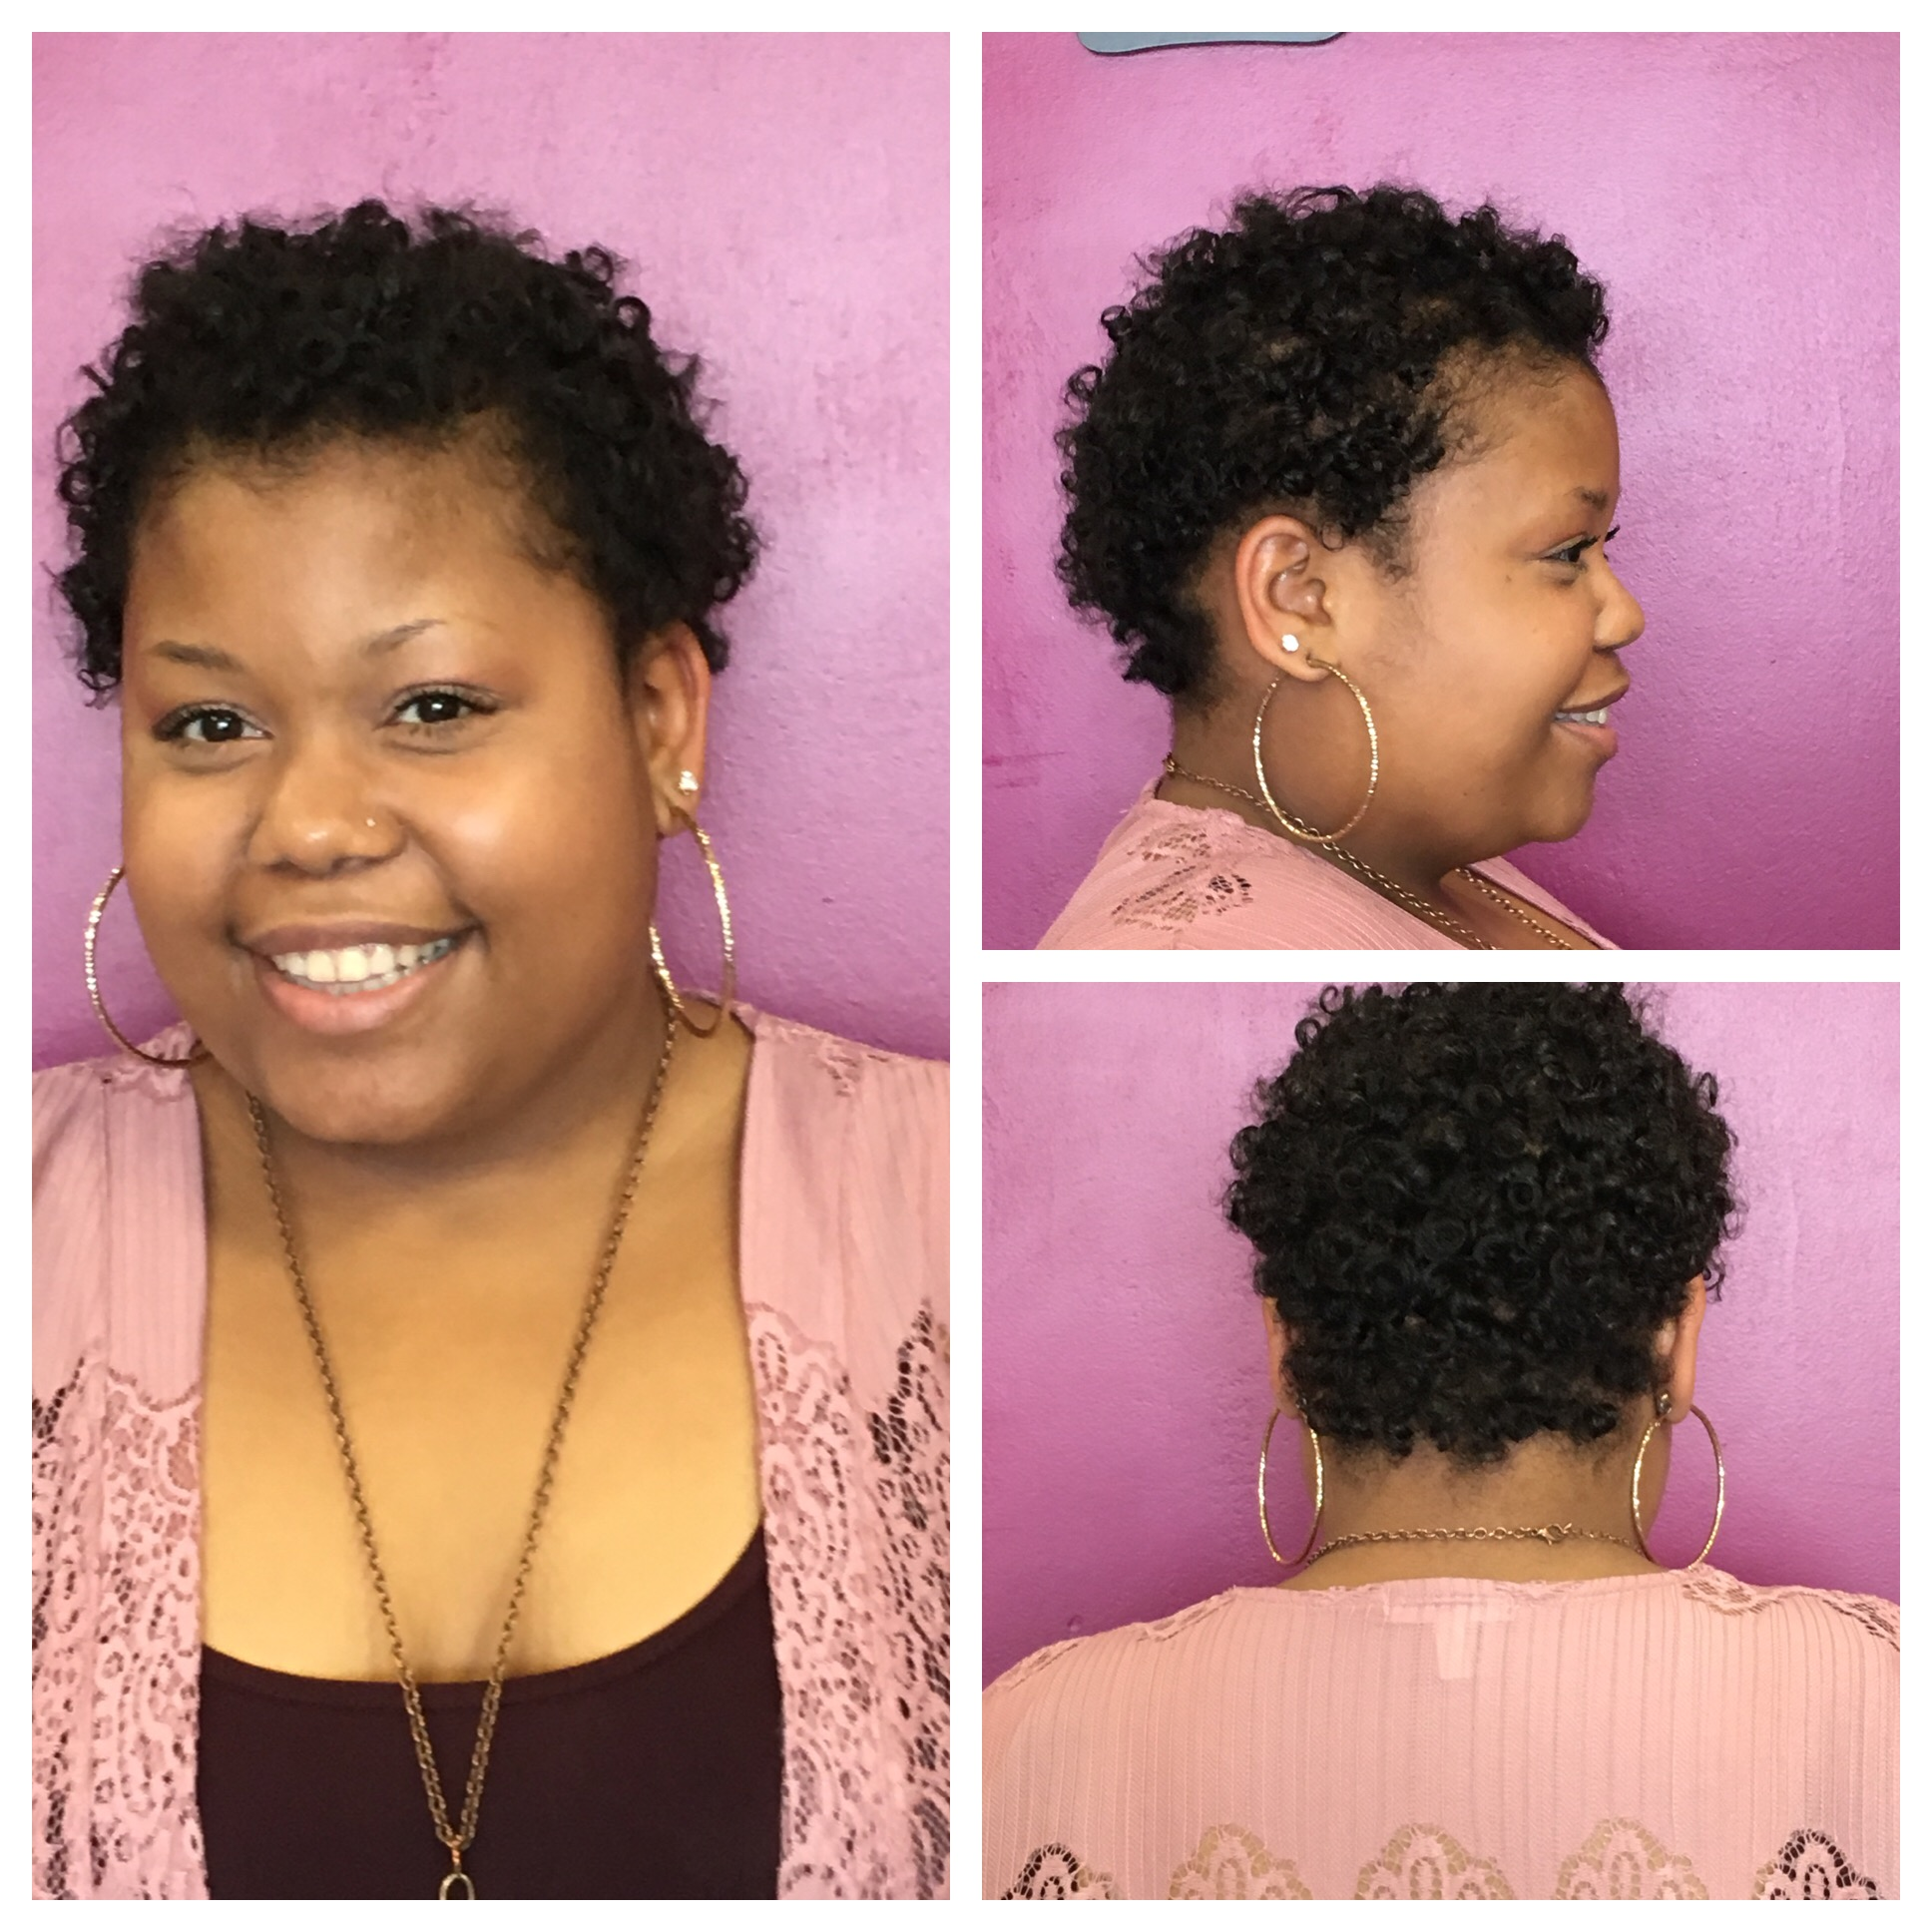 Natural curls done by Deanna